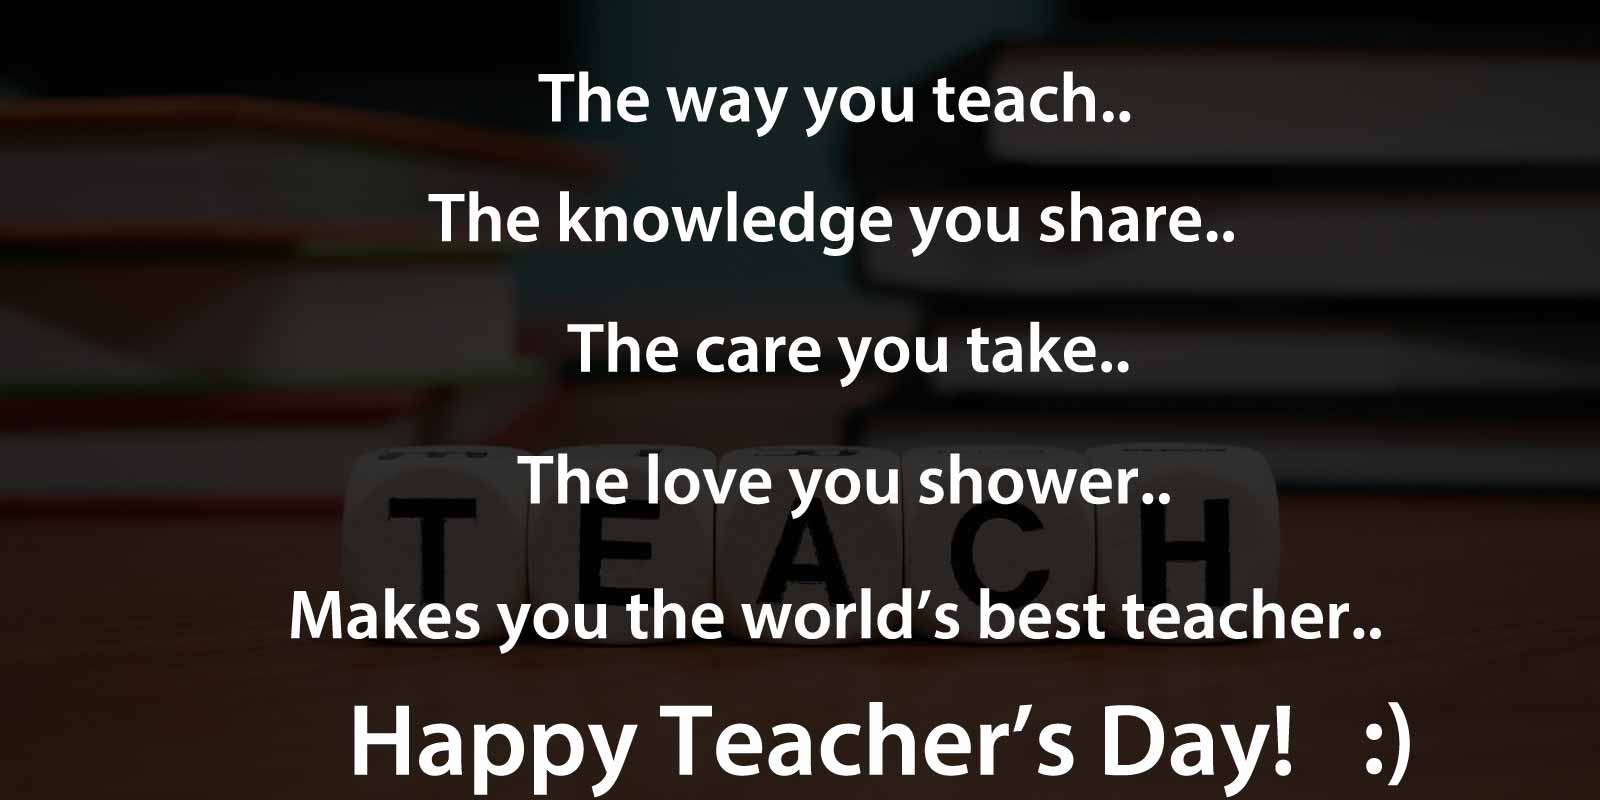 Happy Teachers Day 9 Wishes, Quotes and Messages - Well Quo